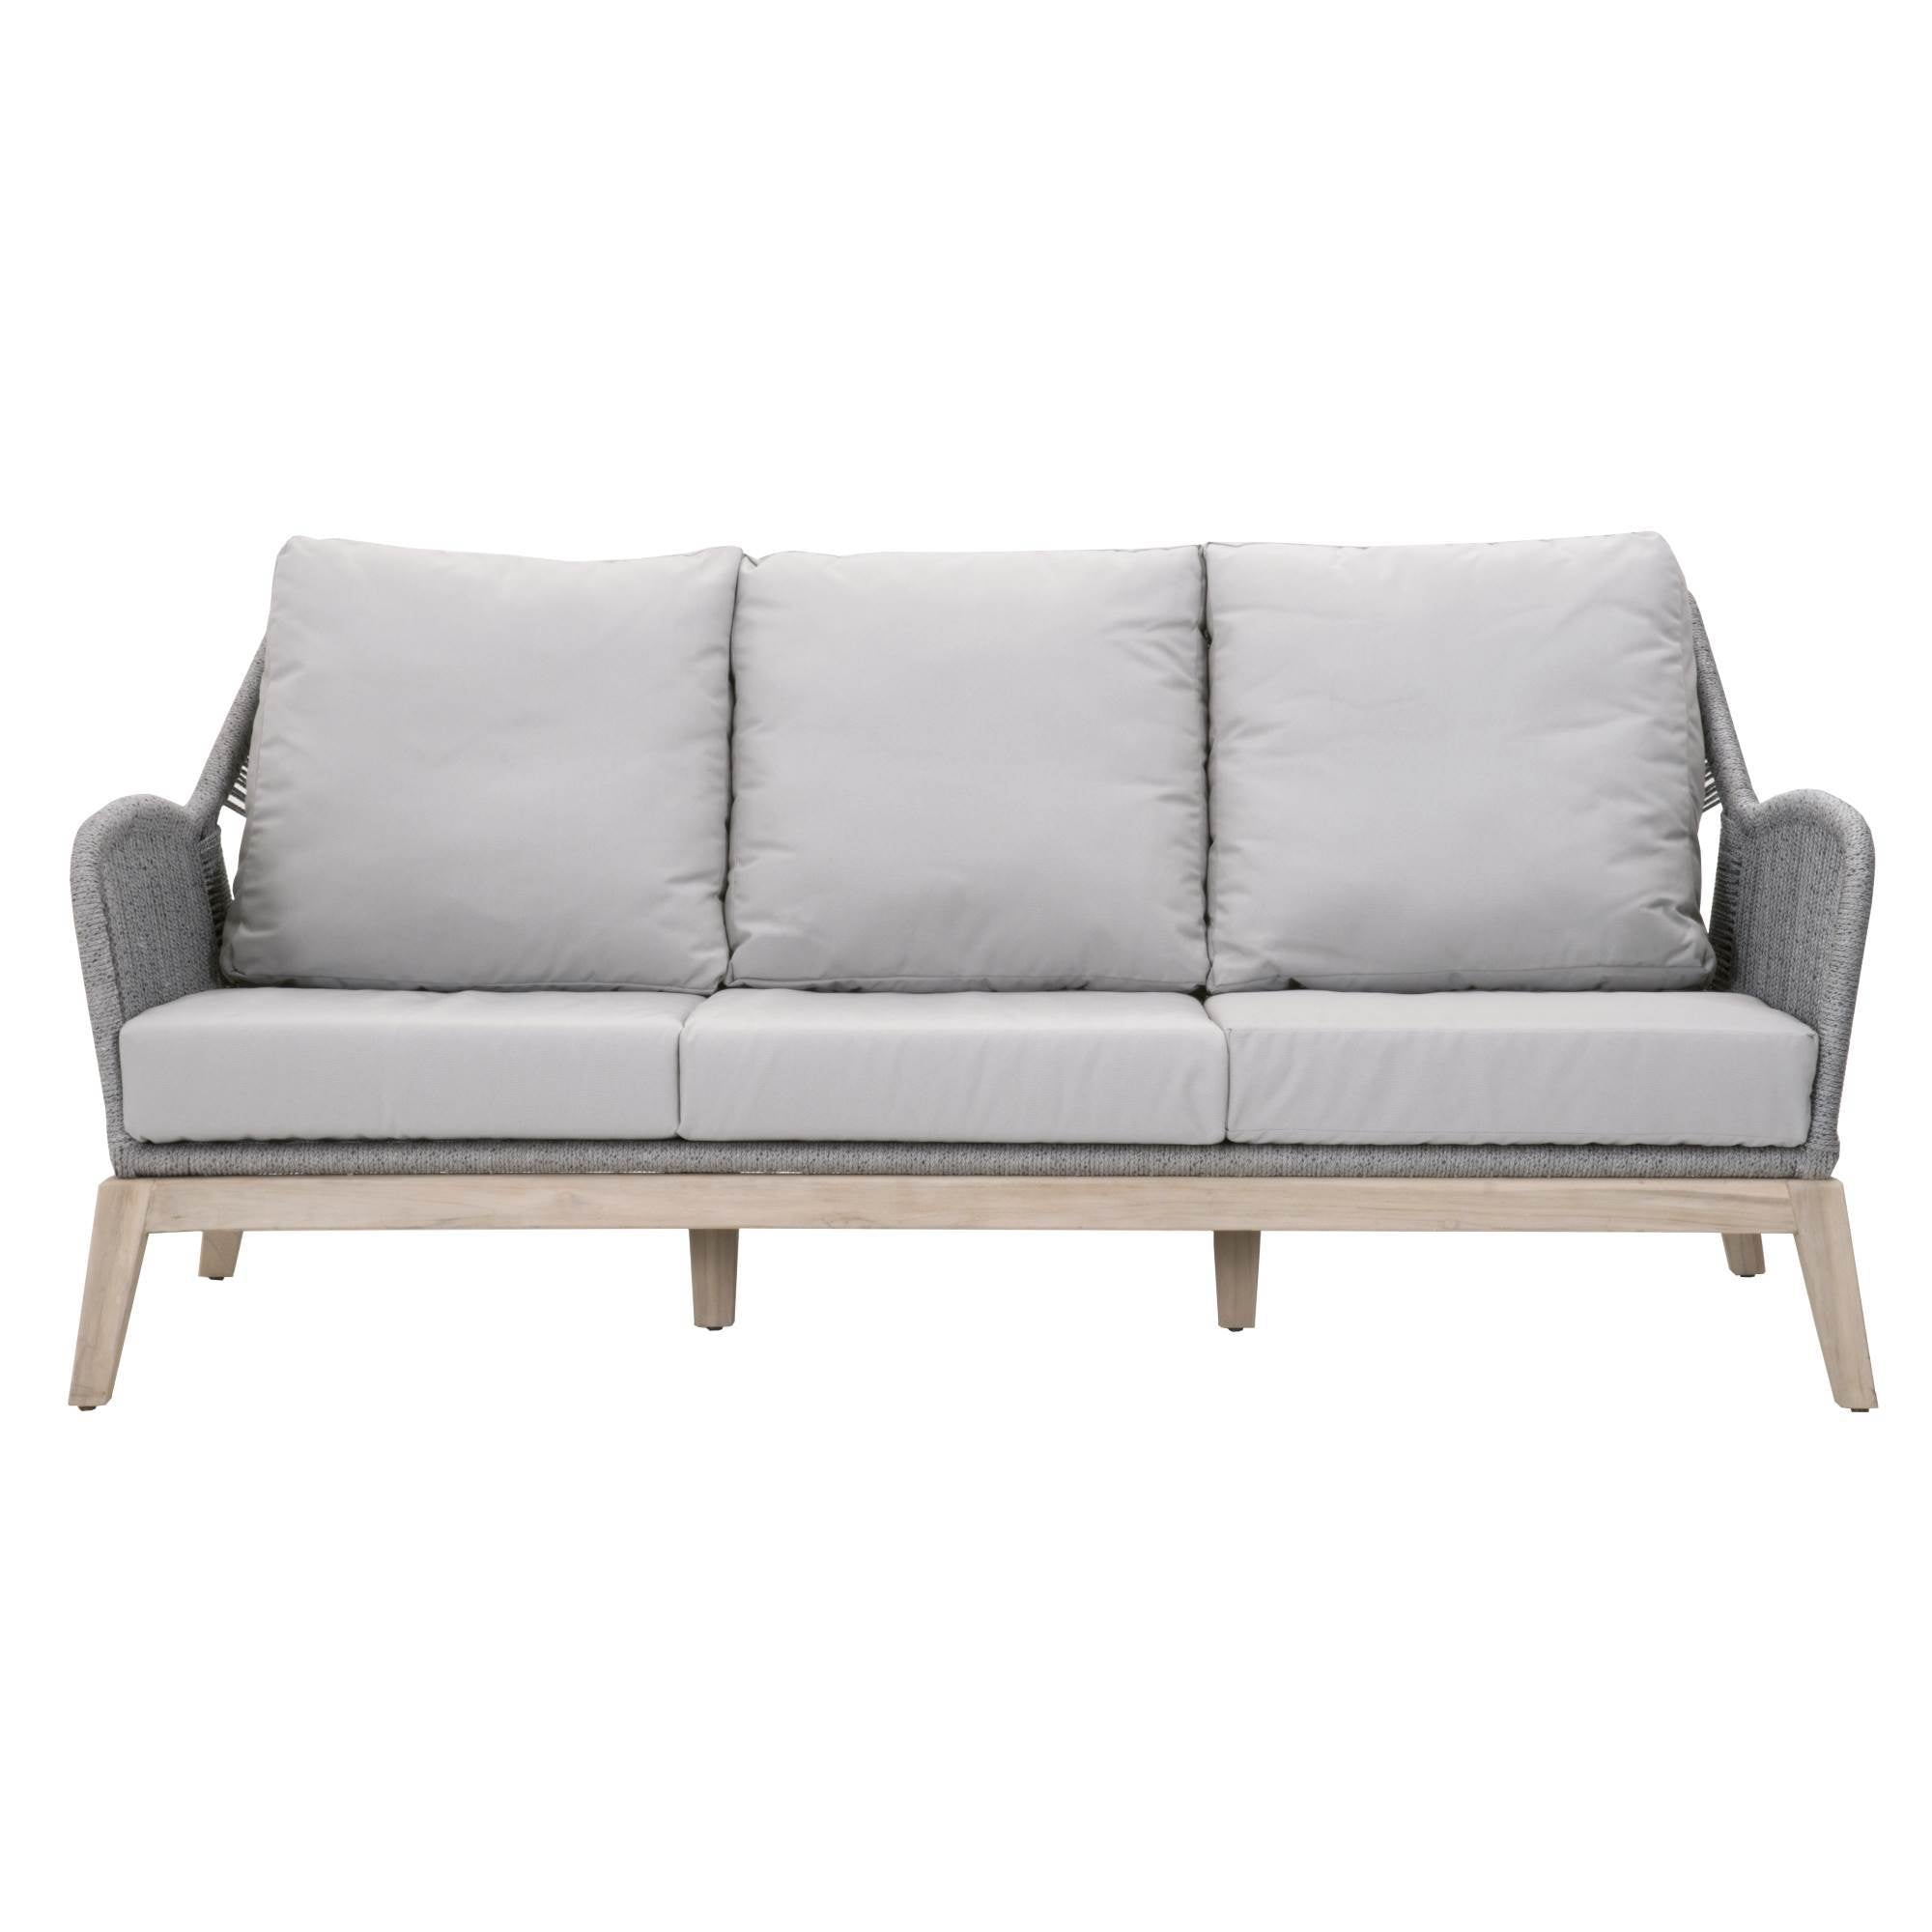 "Loom Outdoor 79"" Sofa in Platinum Rope"